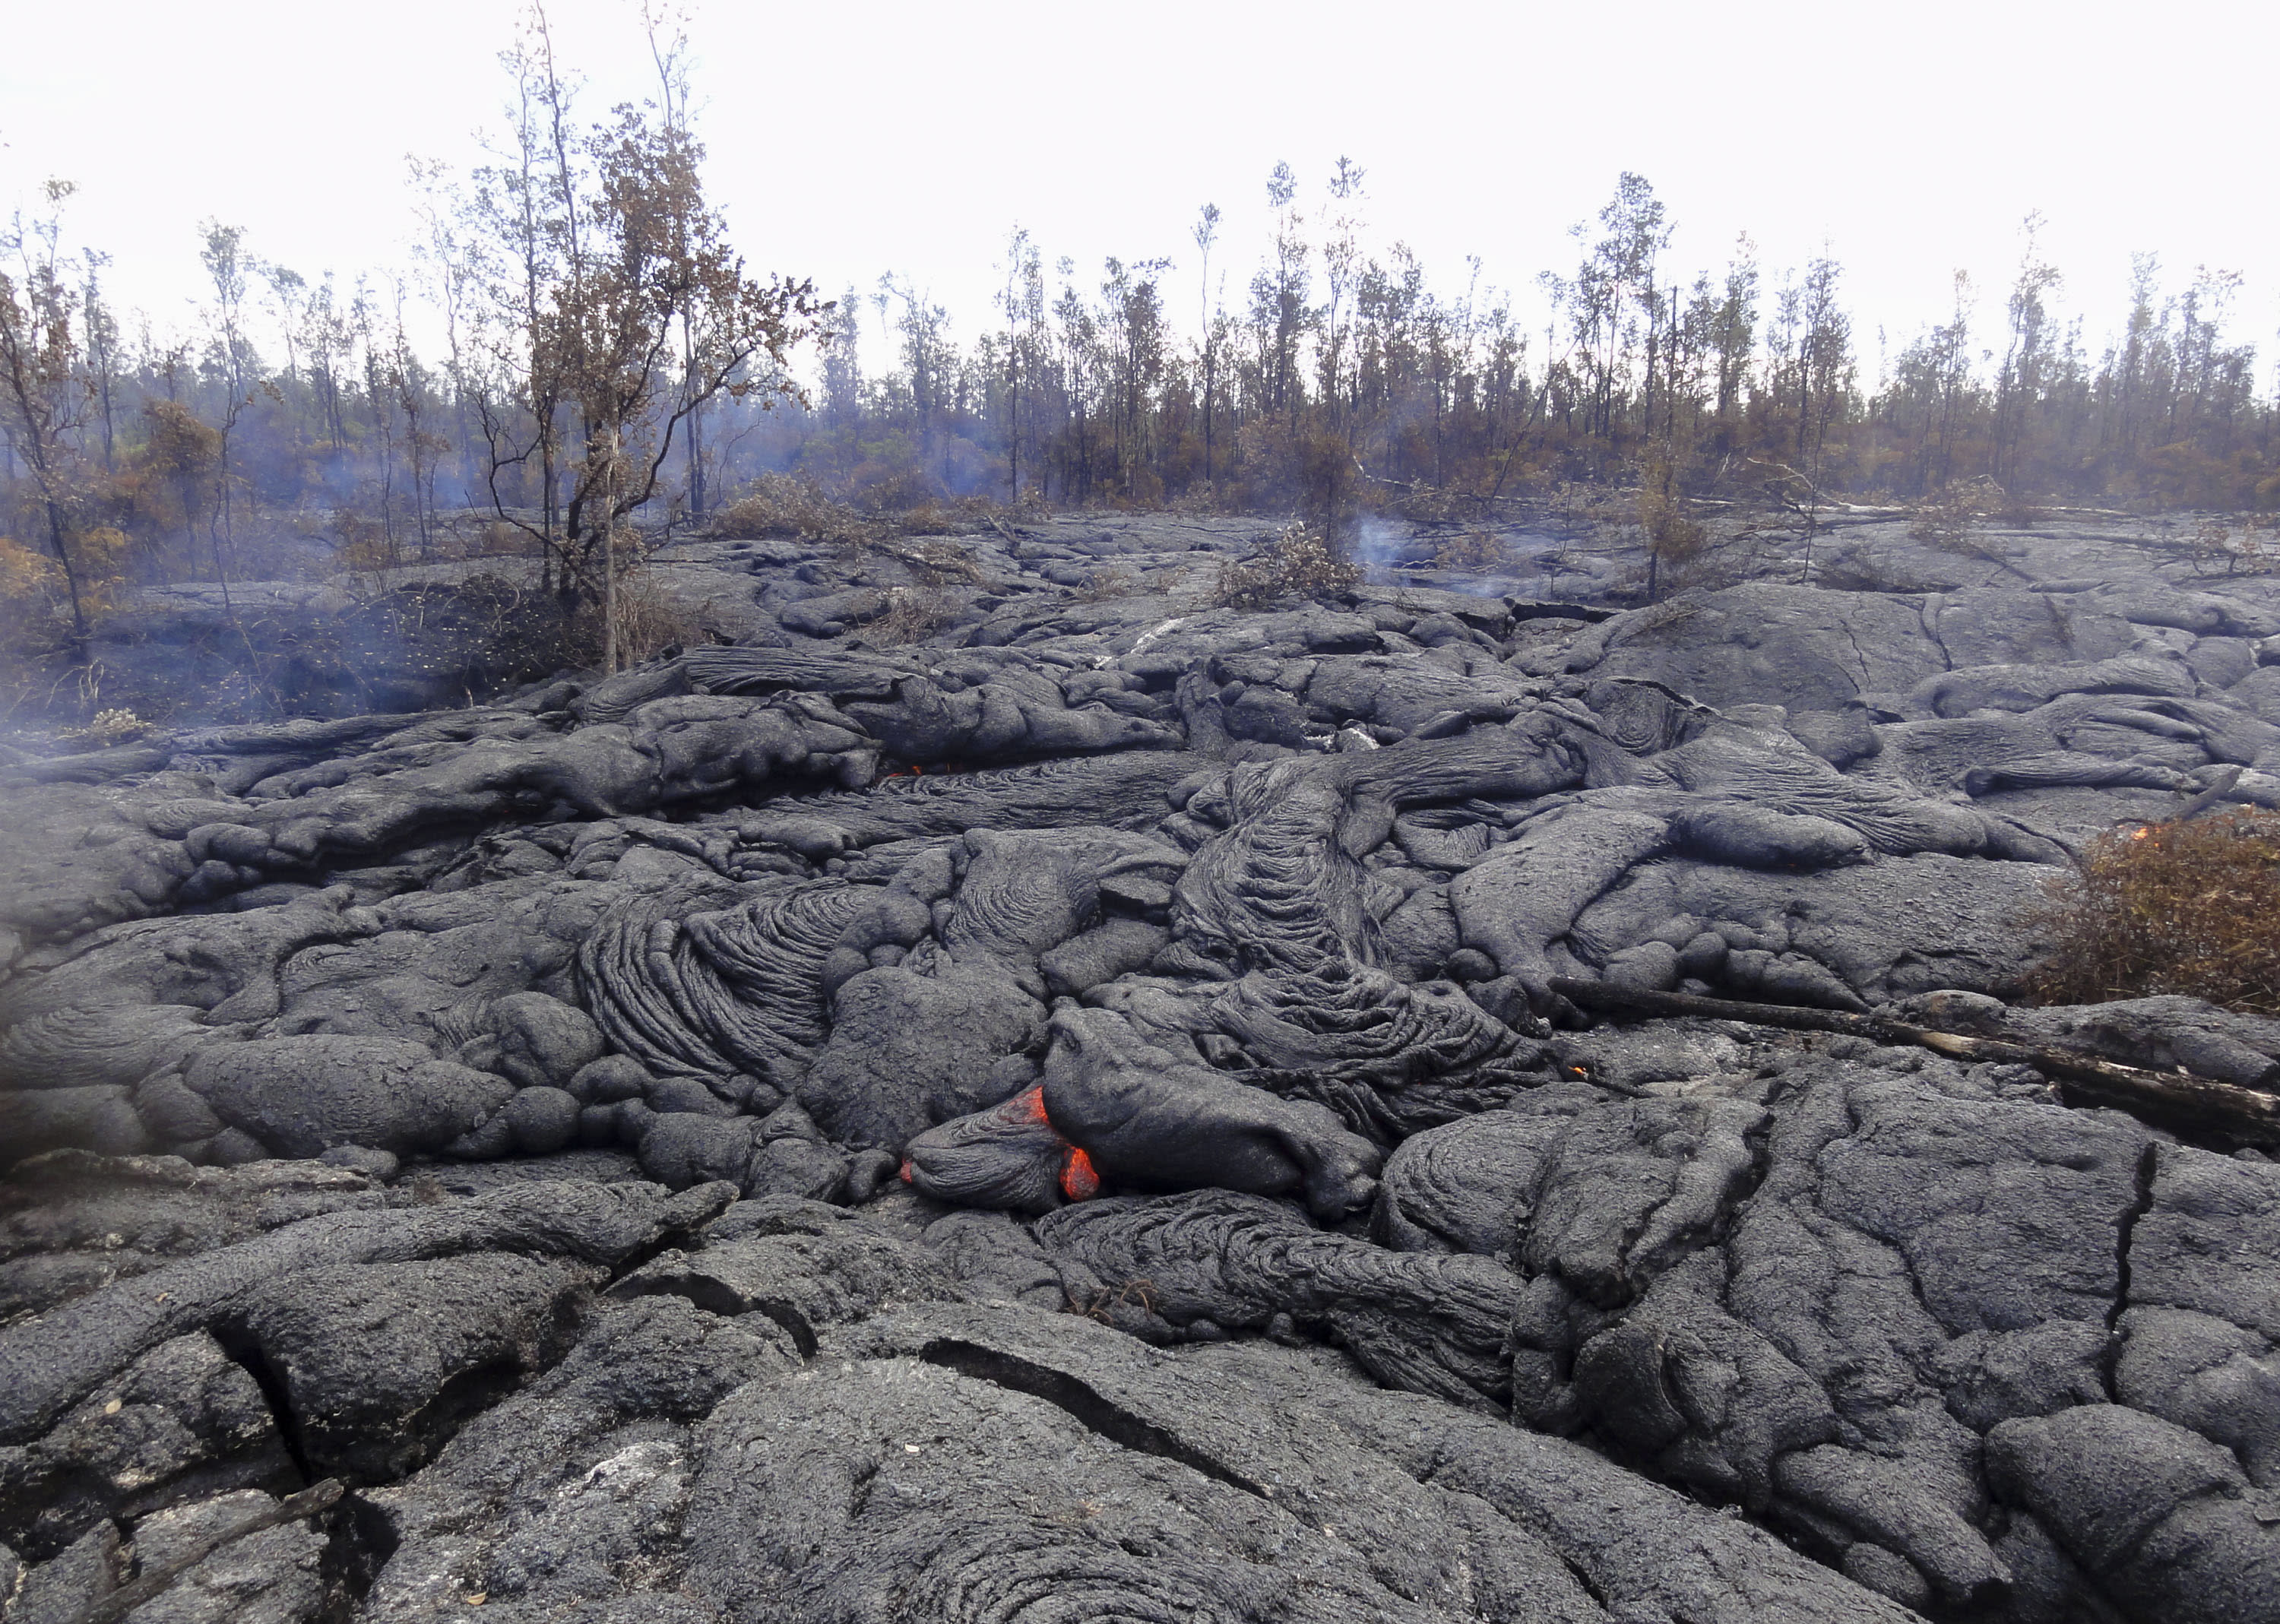 First major retailer to reopen after Hawaii lava scare